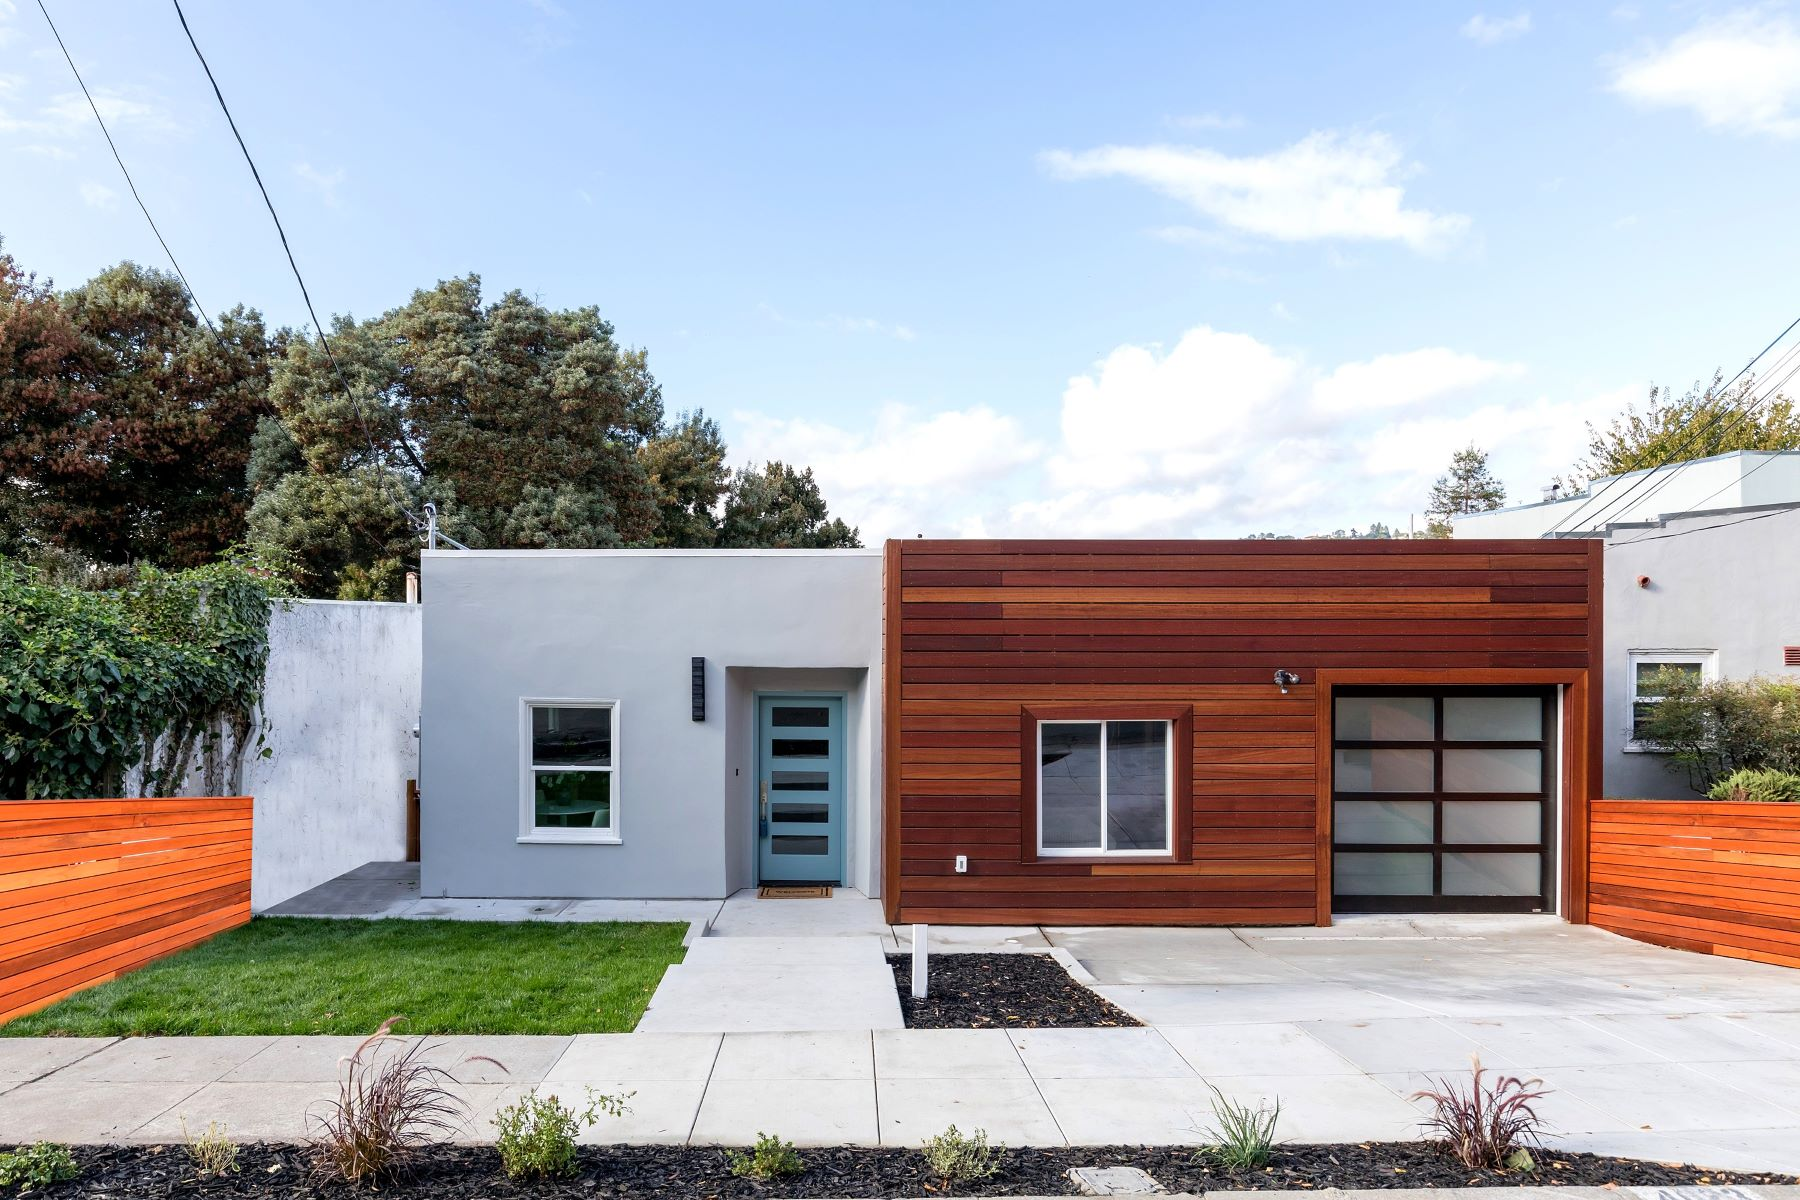 Single Family Homes for Sale at Beautiful Modern In Crocker Highlands 4023 Balfour Avenue Oakland, California 94610 United States